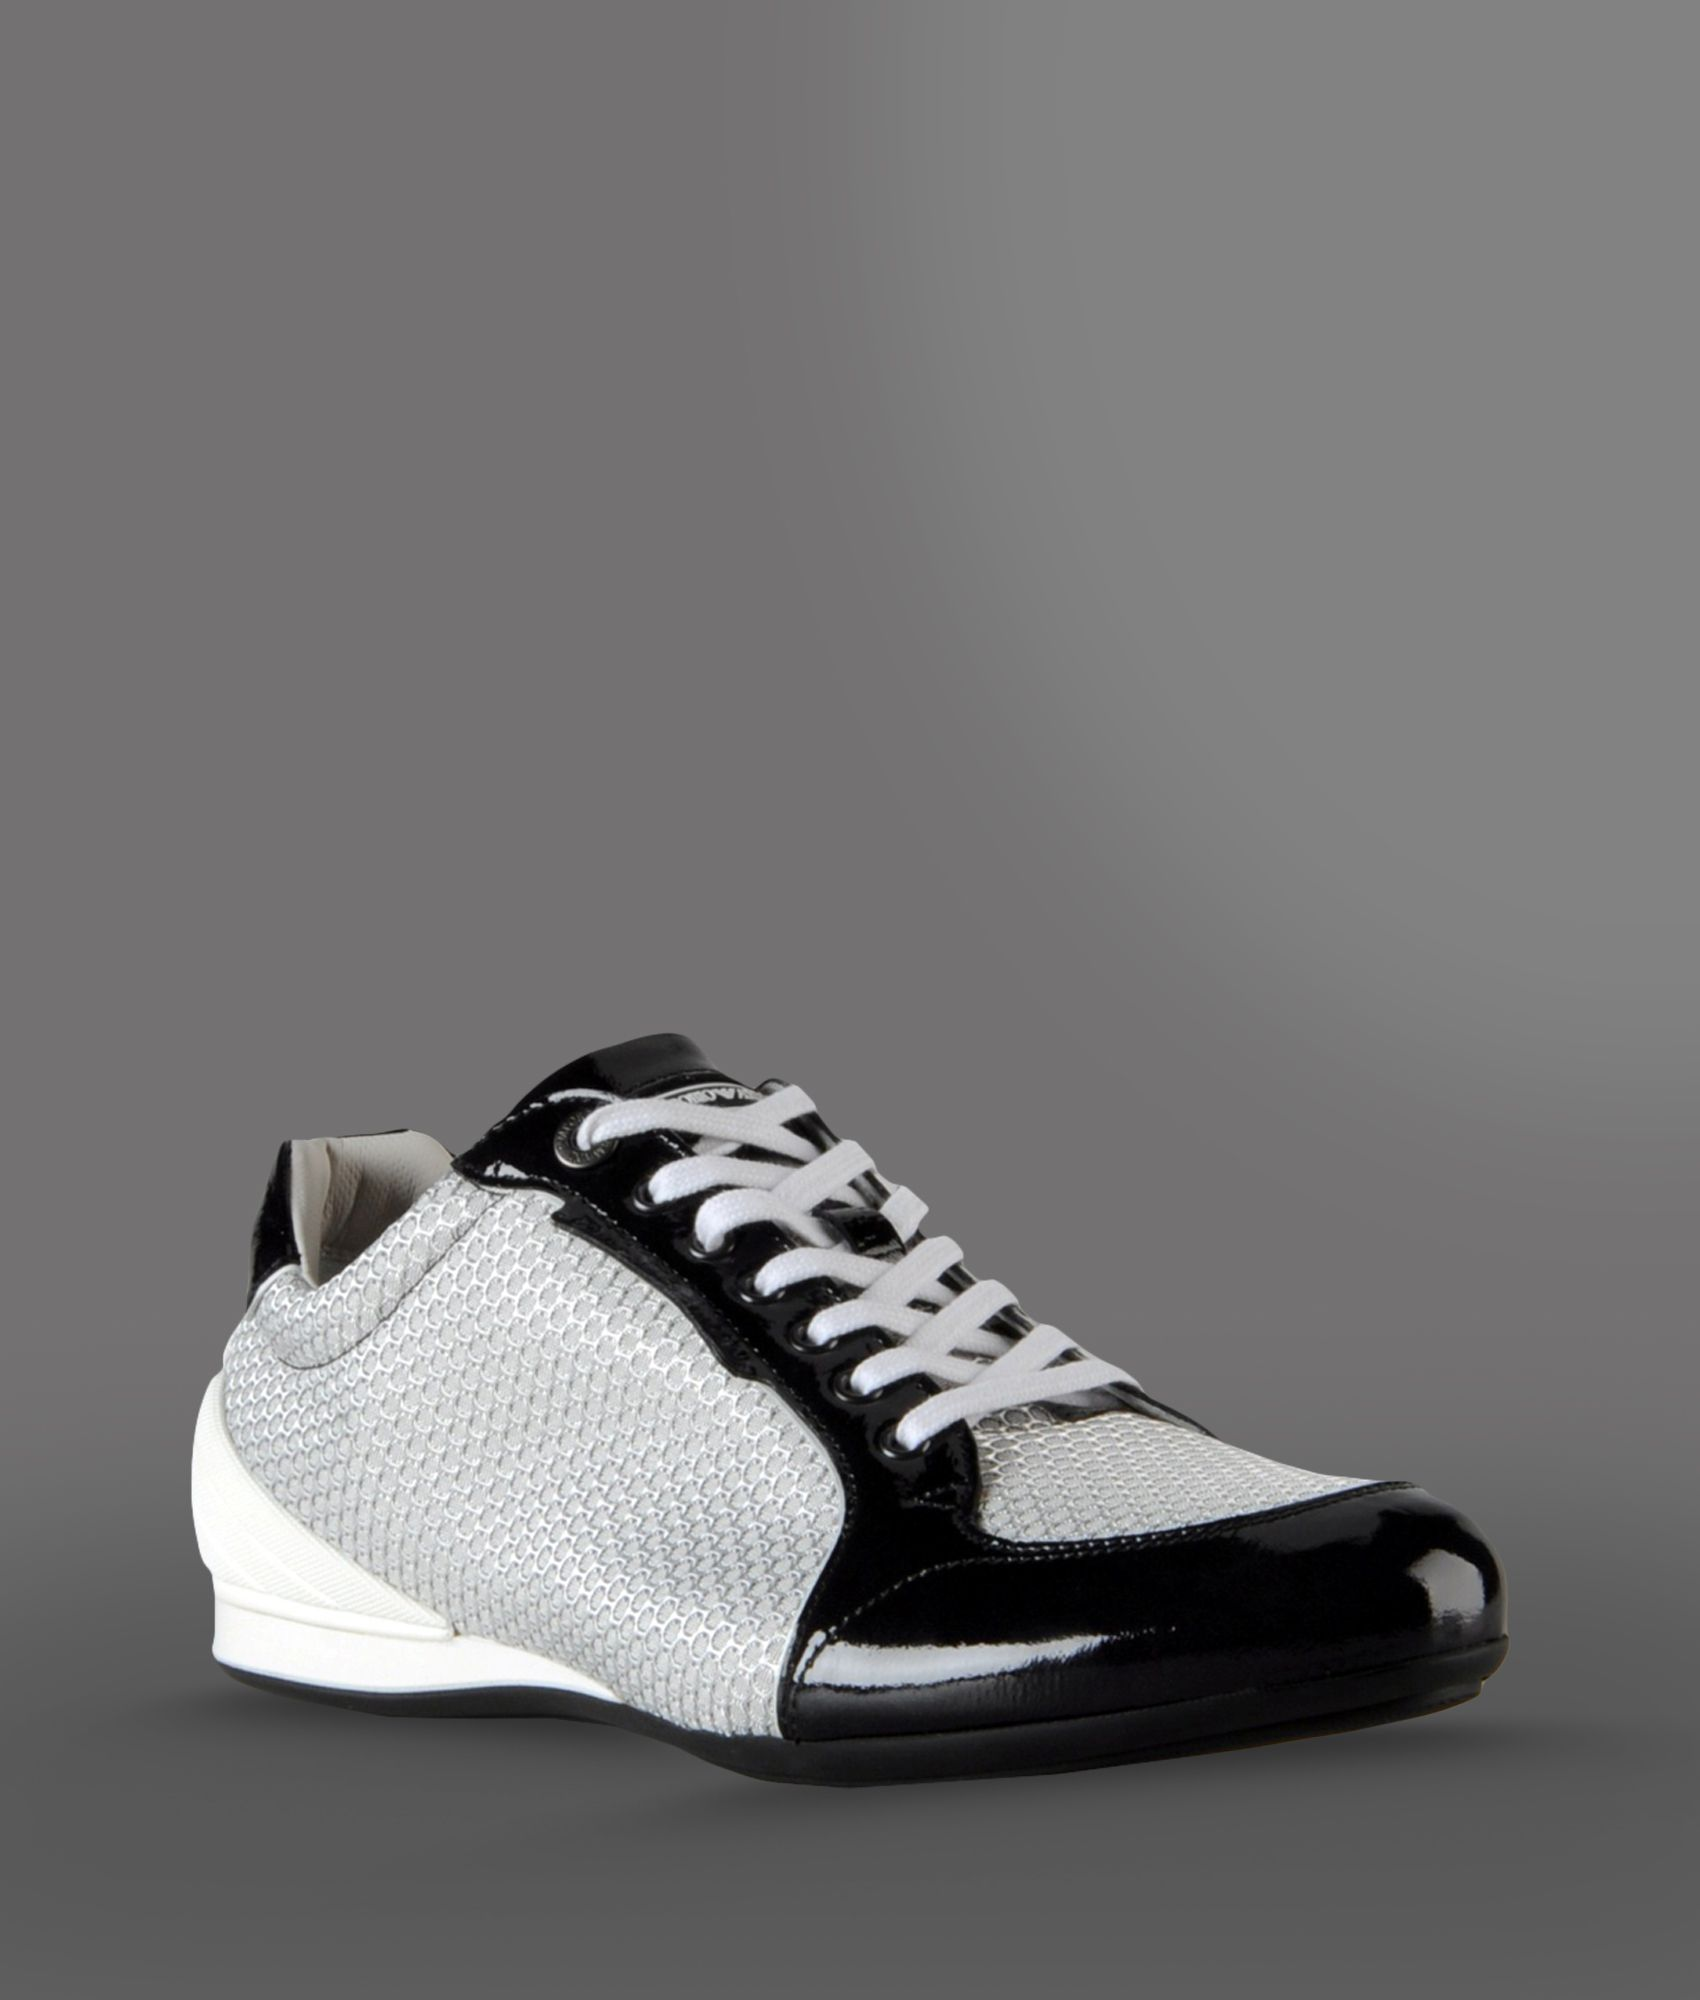 Three important things to know about the Armani sneaker